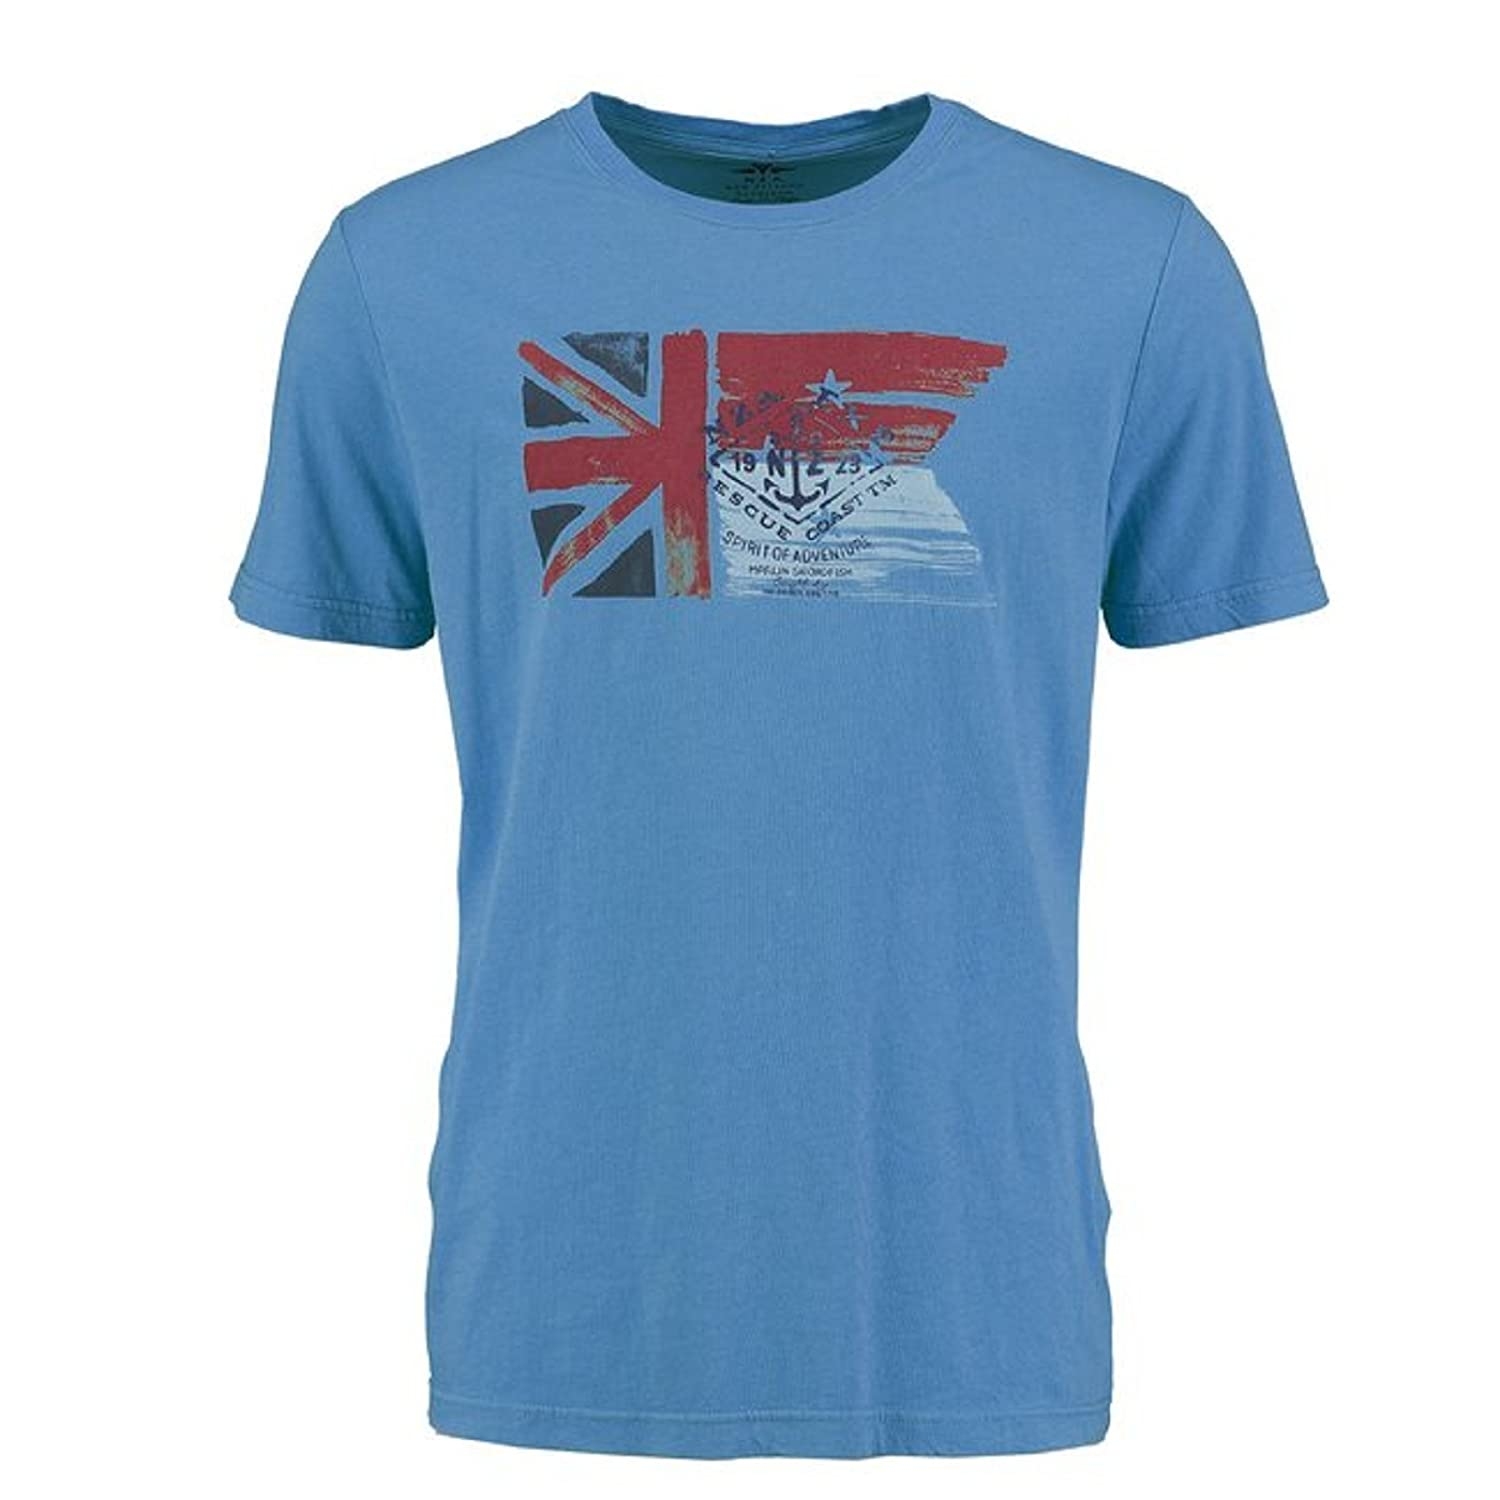 New Zealand Auckland T-shirt?-?T- Shirt Blue